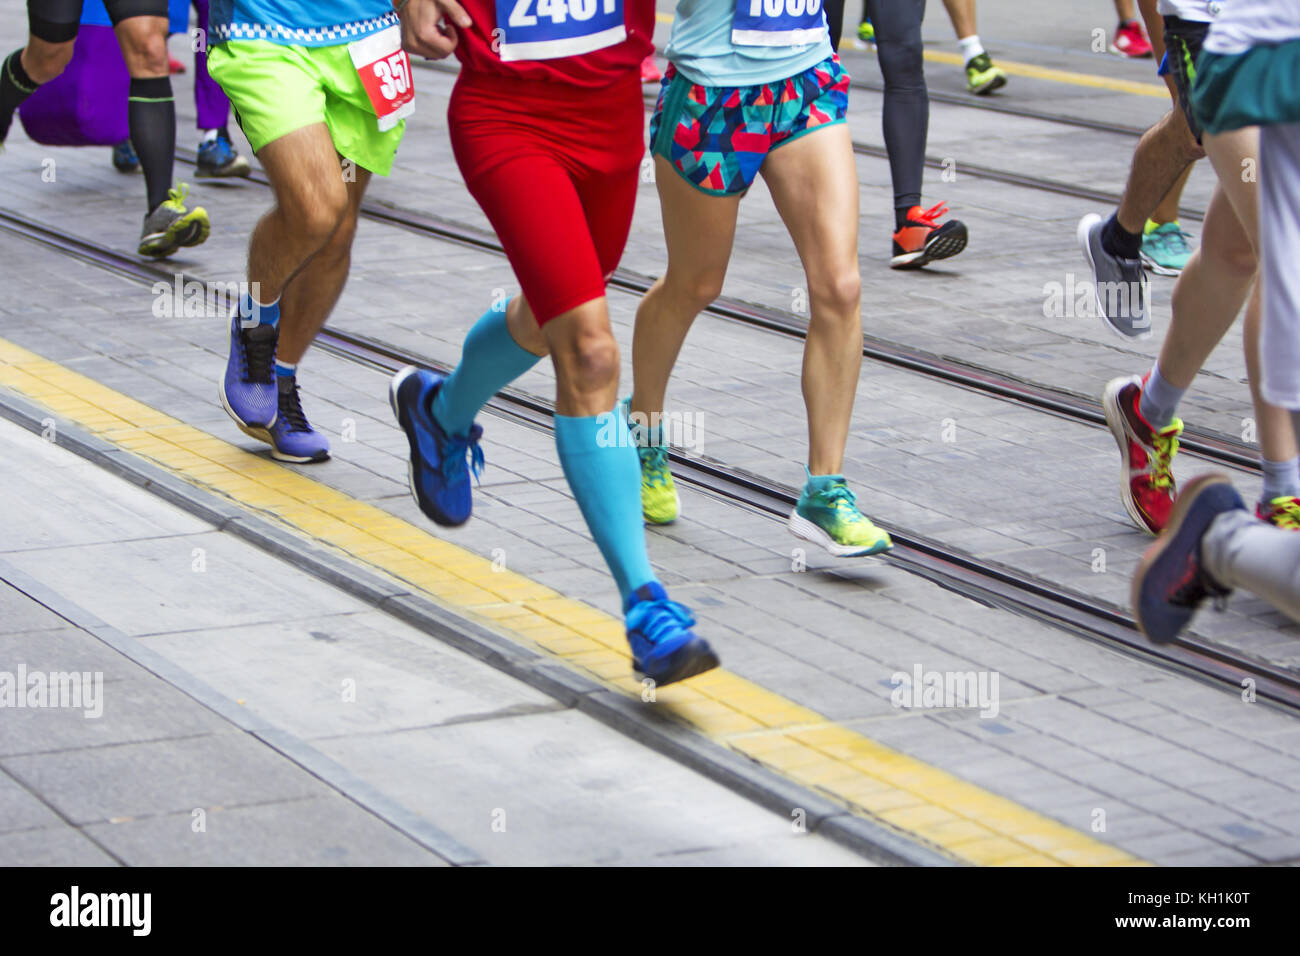 Marathon runners race in city streets, blurred motion - Stock Image